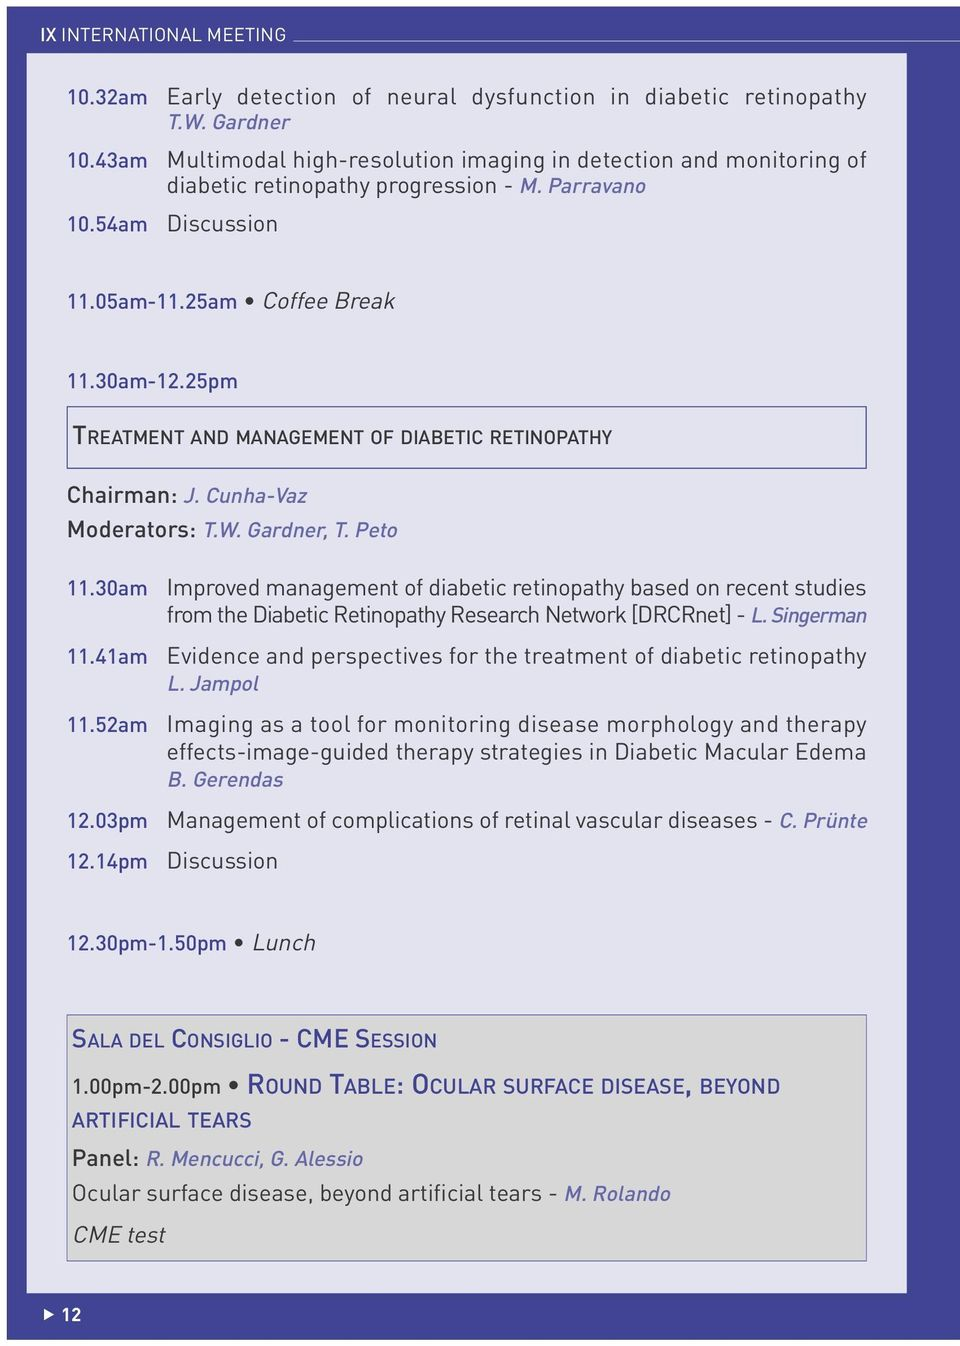 25pm TREATMENT AND MANAGEMENT OF DIABETIC RETINOPATHY Chairman: J. Cunha-Vaz Moderators: T.W. Gardner, T. Peto 11.30am 11.41am 11.52am 12.03pm 12.